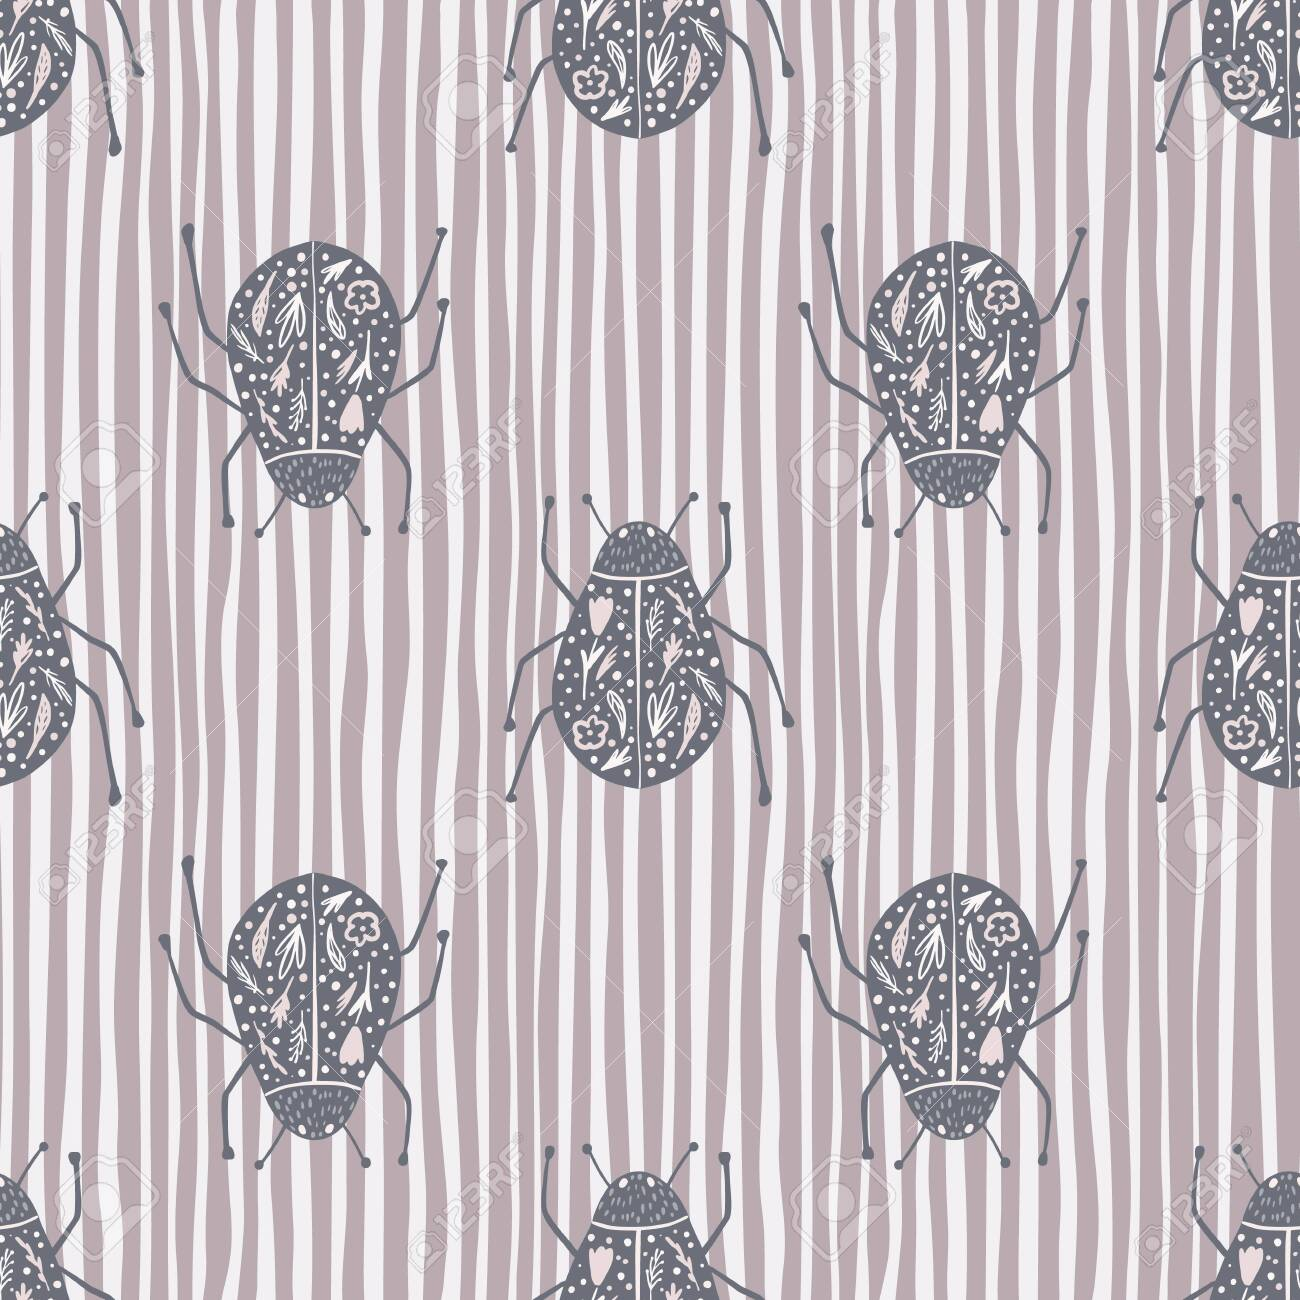 Fauna seamless pattern with folk bugs silhouettes. Pale purple insects print on stripped background. Animal nature artwork. Perfect for wallpaper, textile, wrapping, fabric. Vector illustration. - 155897908